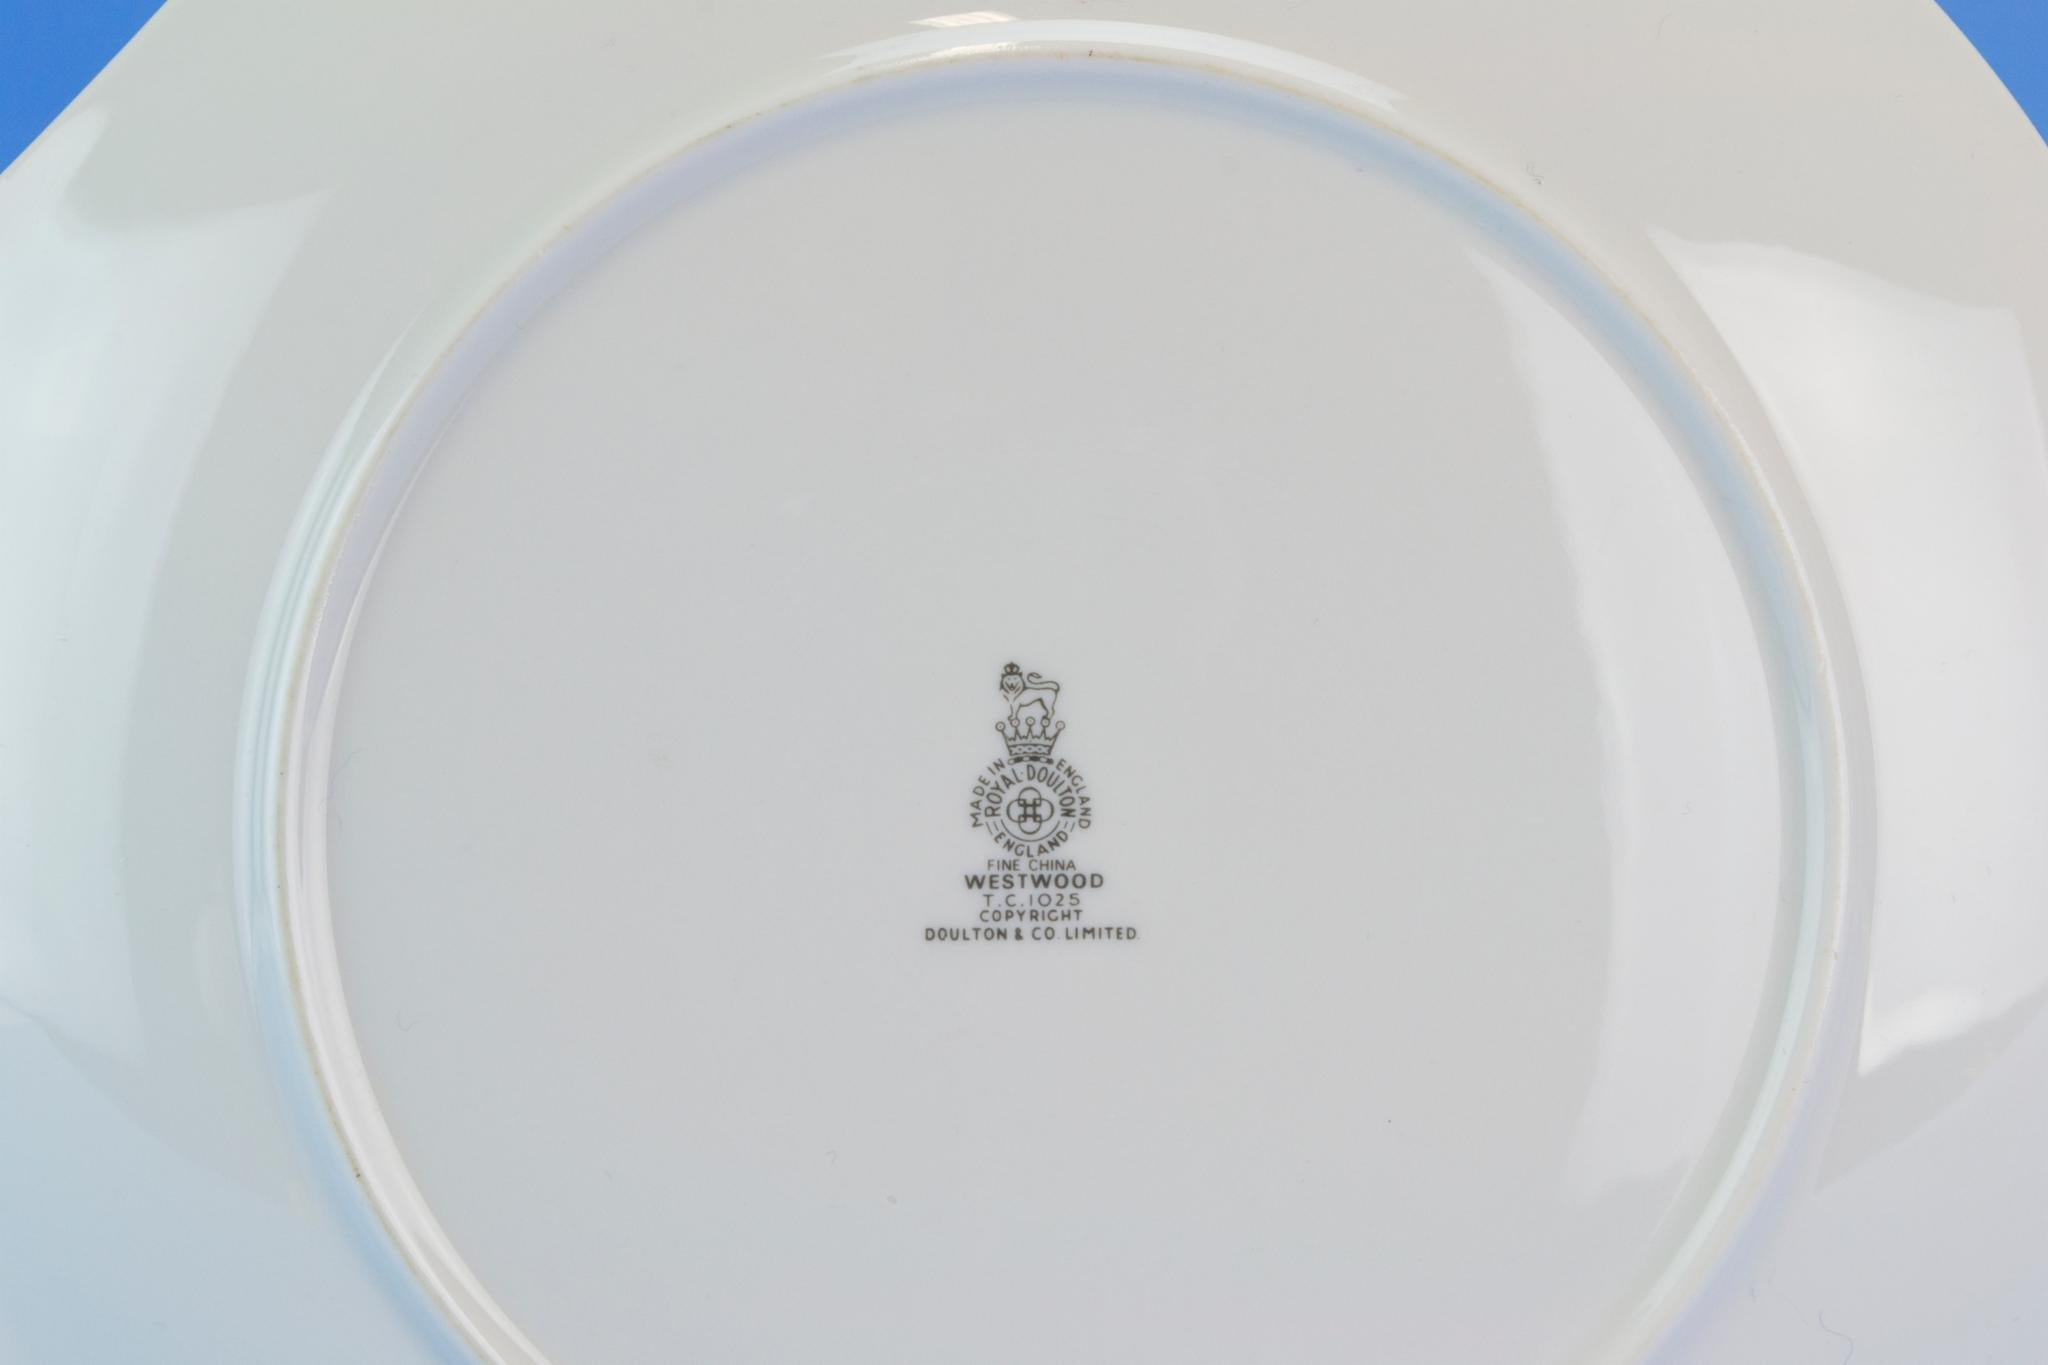 ... Medium Cake Serving Plate by Royal Doulton English Circa 1960 : cake serving plate - pezcame.com